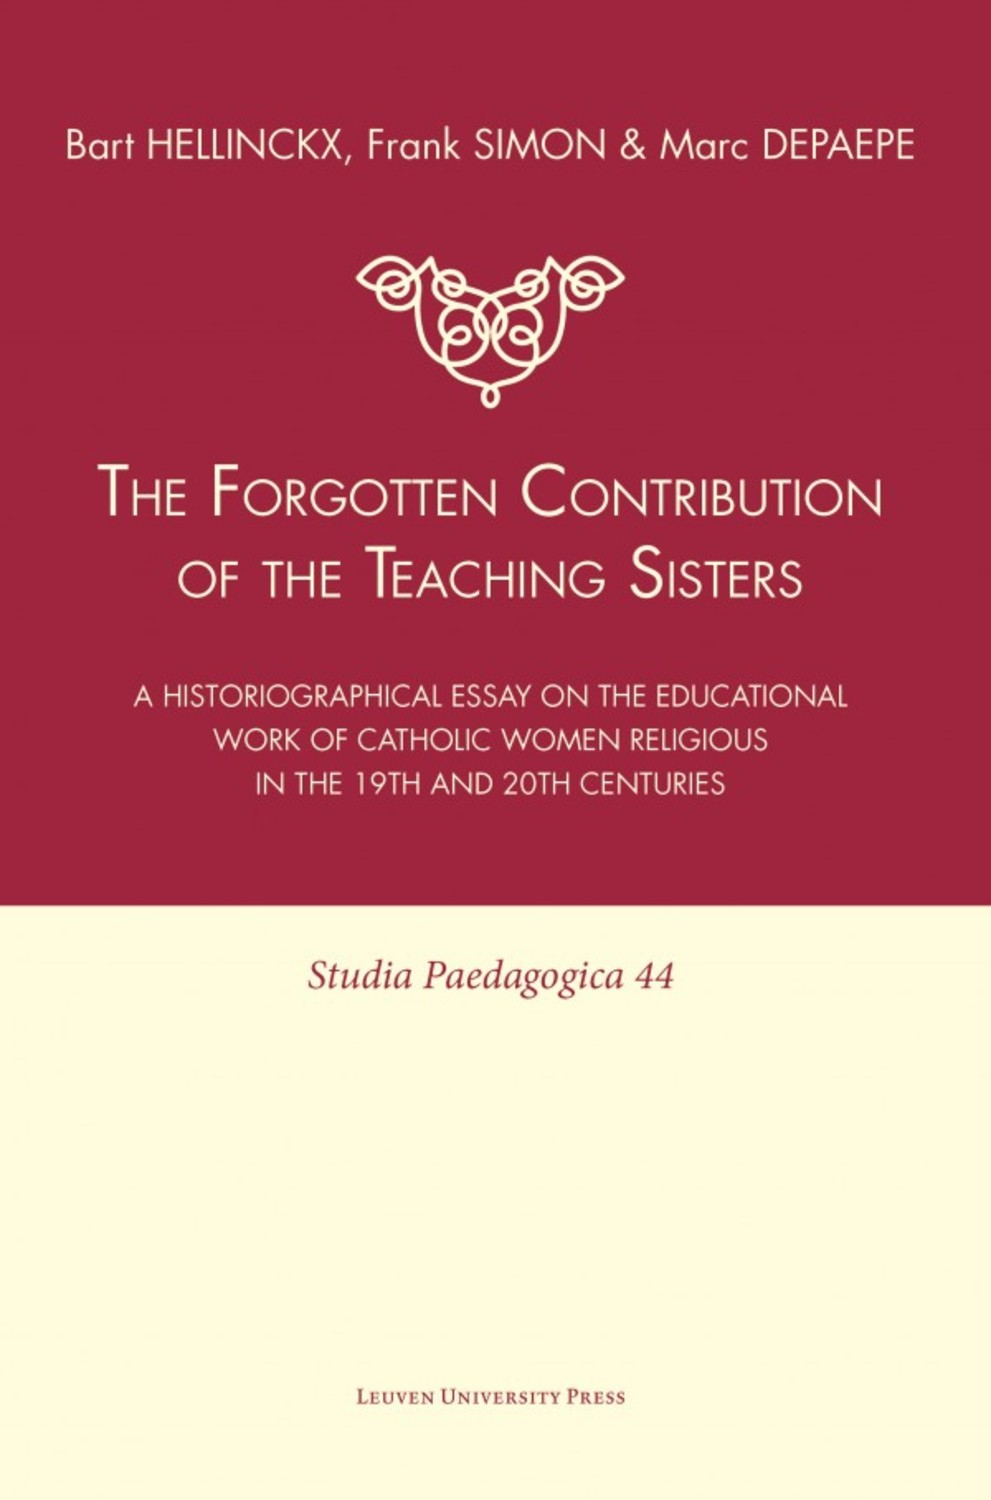 The Forgotten Contribution of the Teaching Sisters